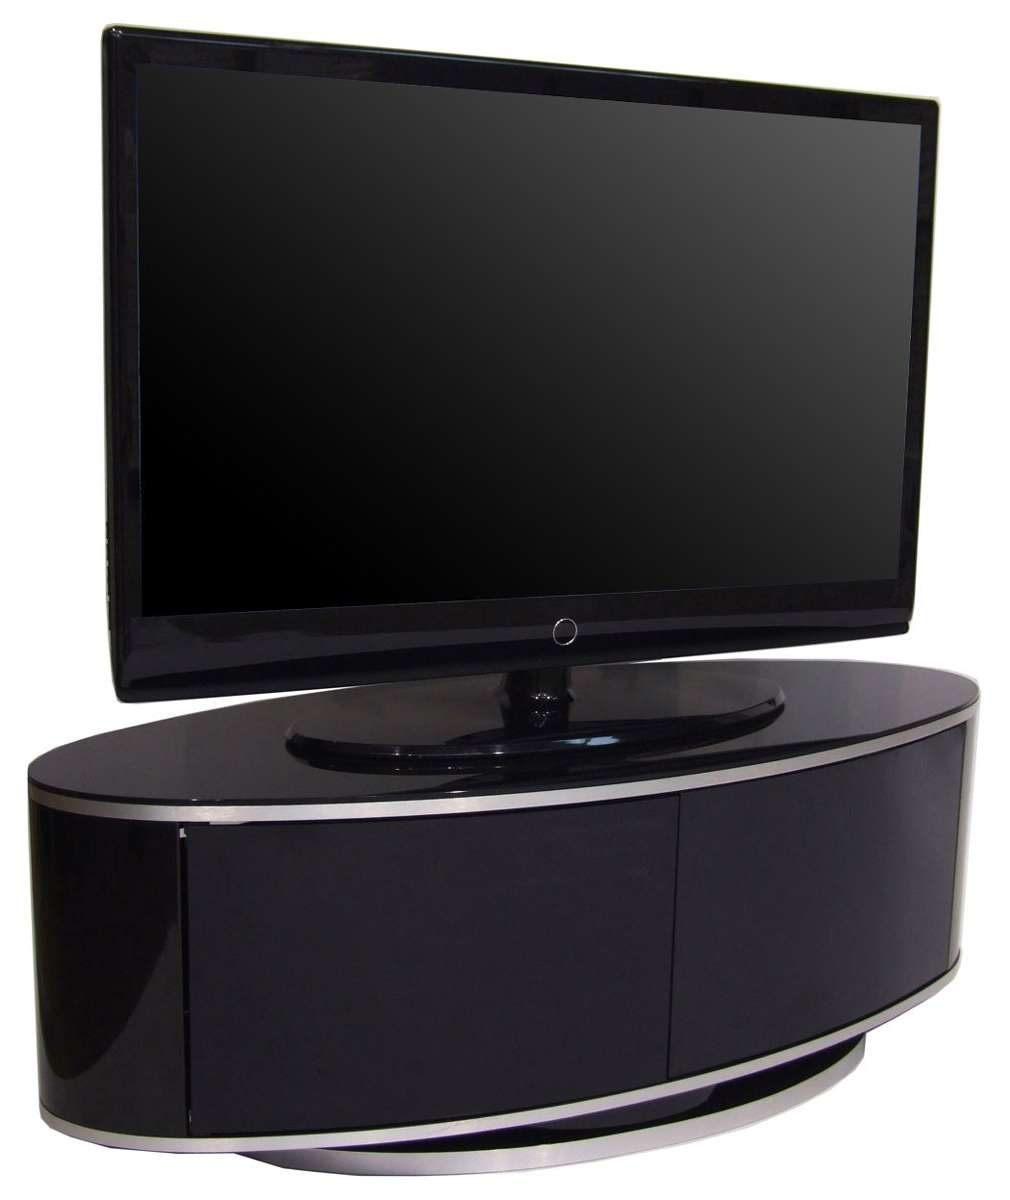 Luna High Gloss Black Oval Tv Cabinet Pertaining To Tv Cabinets Black High Gloss (View 5 of 20)